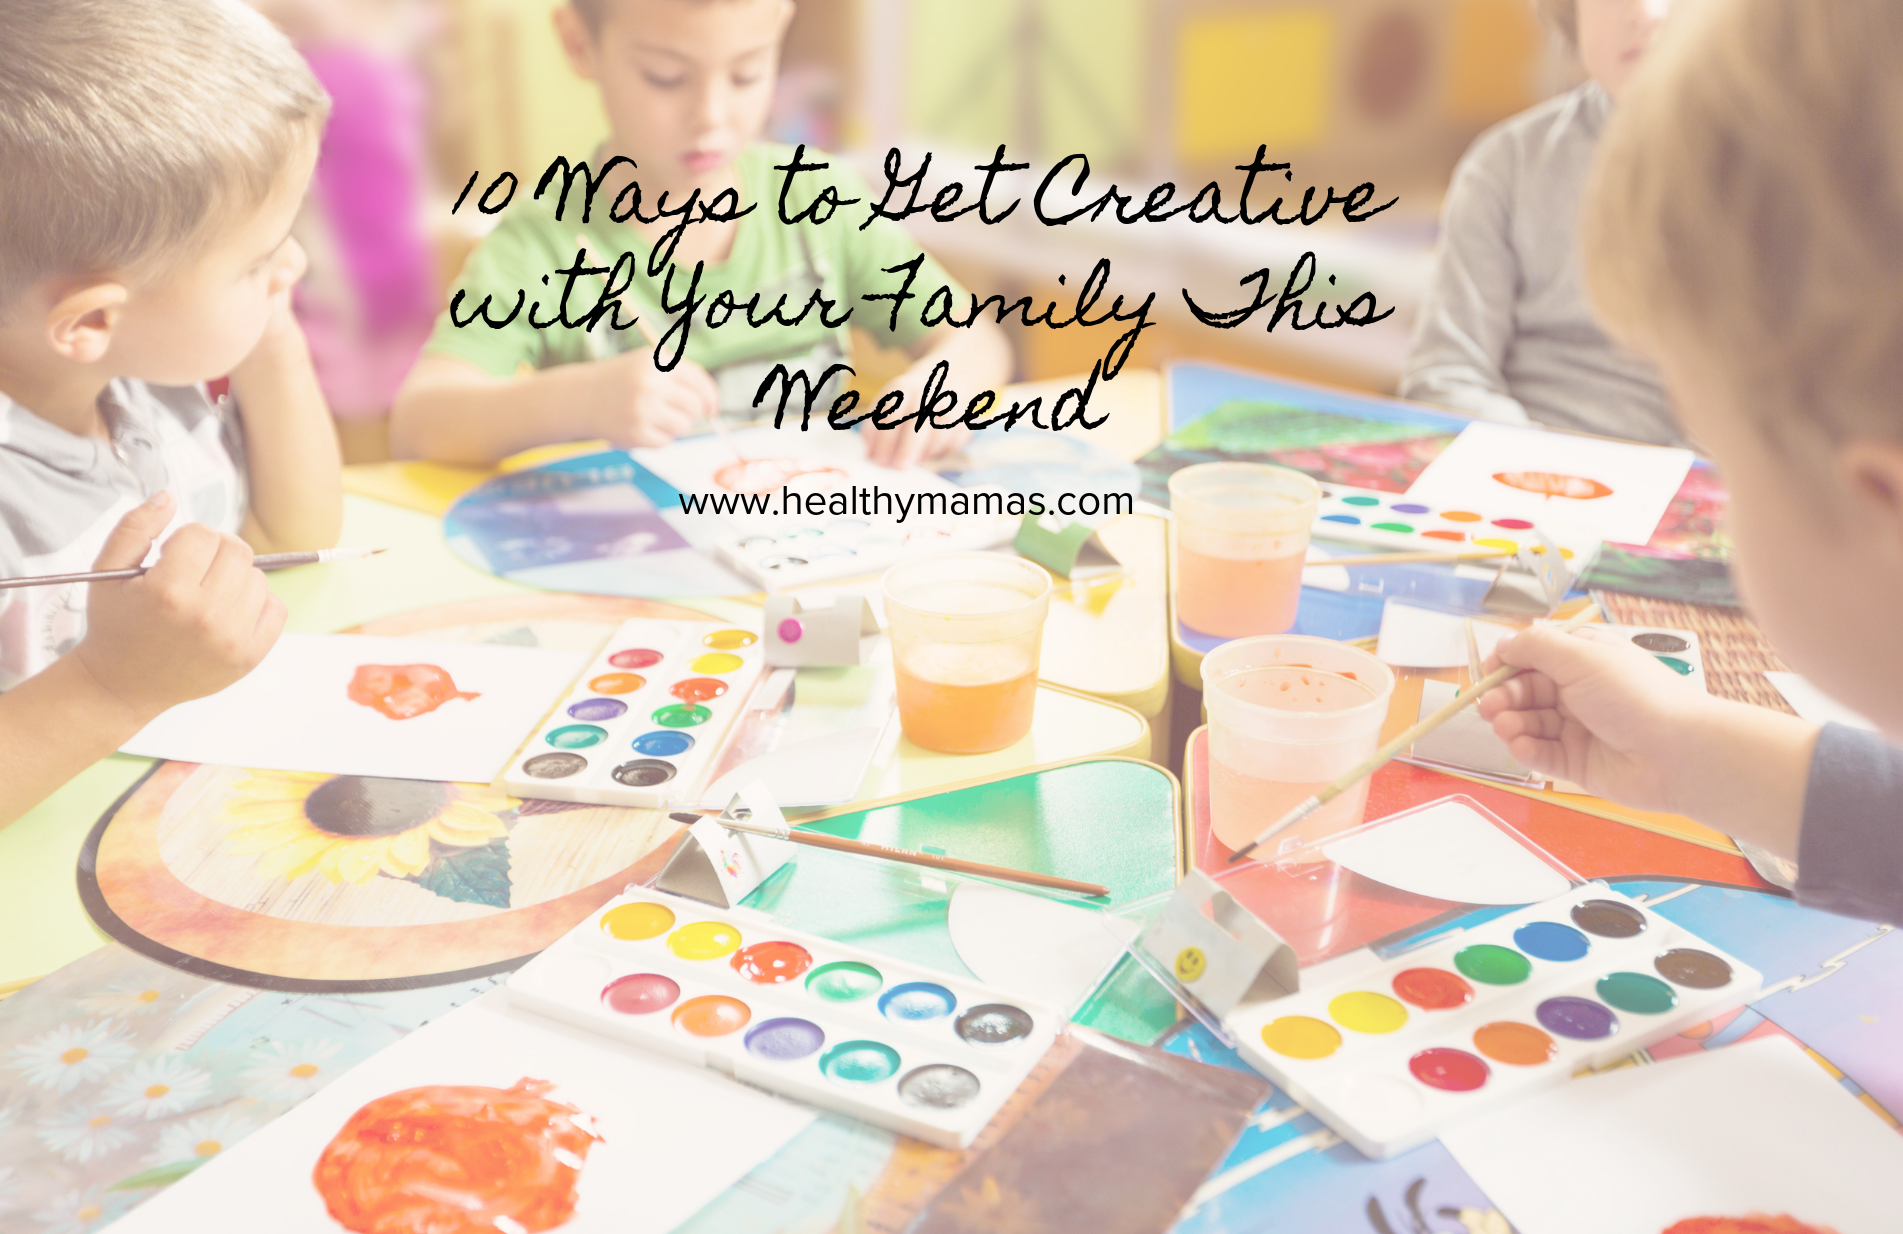 10 Ways to Get Creative with Your Family This Weekend